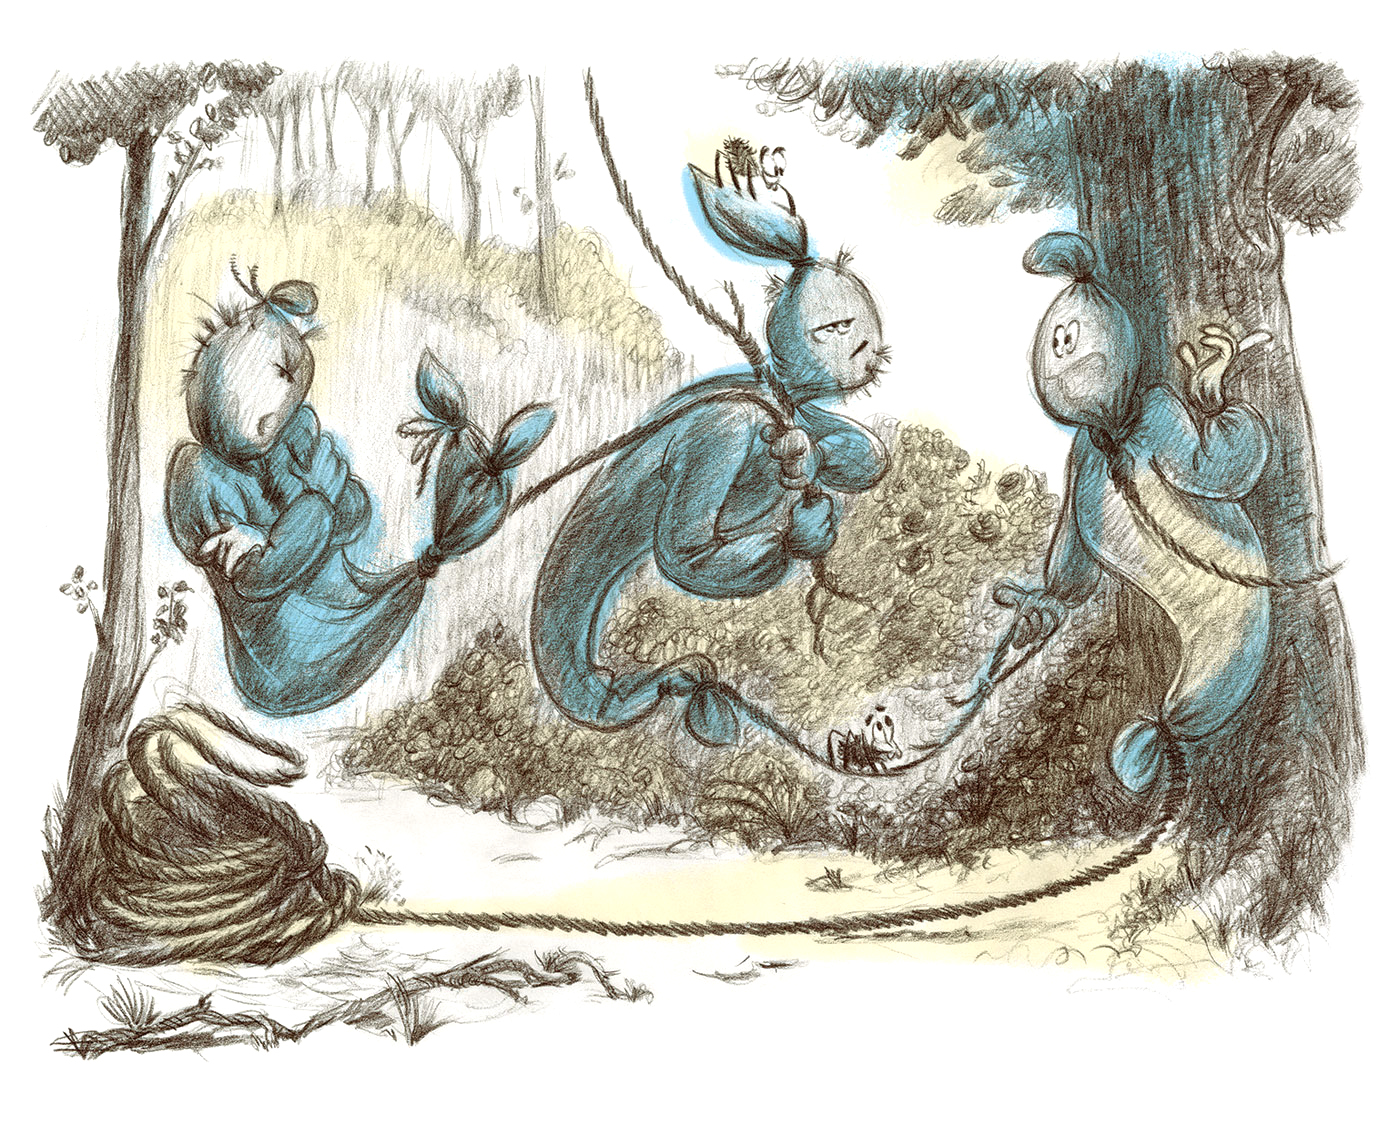 Spooky Ghosts - Book Illustration - In The Forest